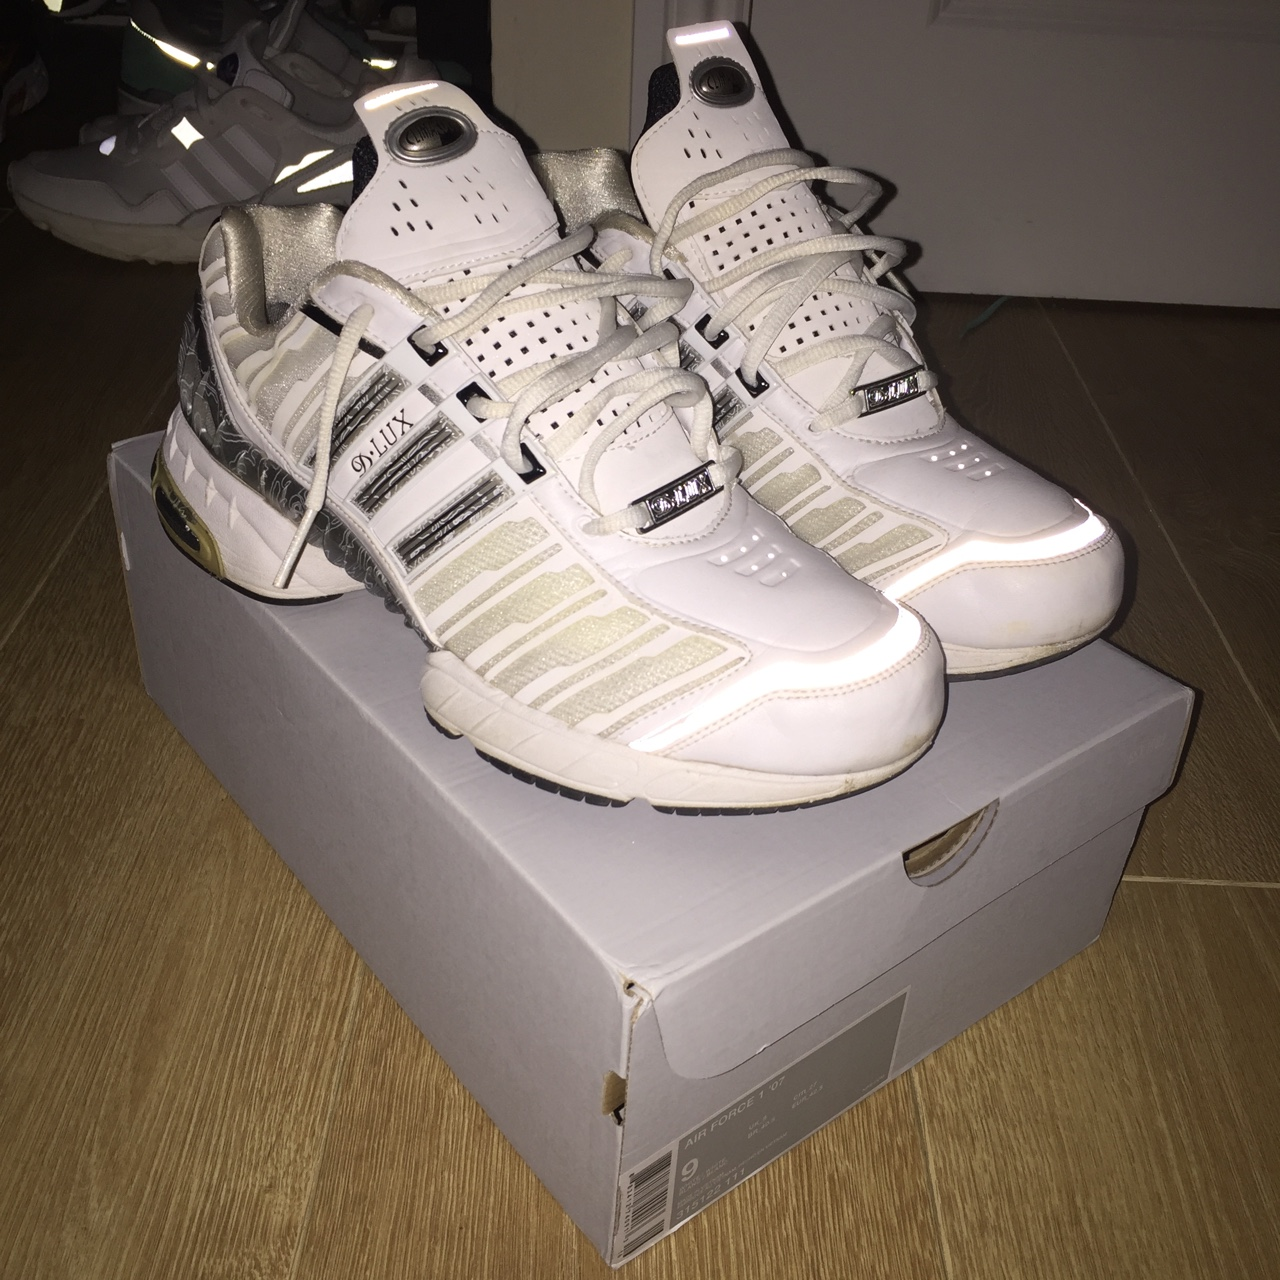 Adidas D•LUX deluxe climacool retro trainers...